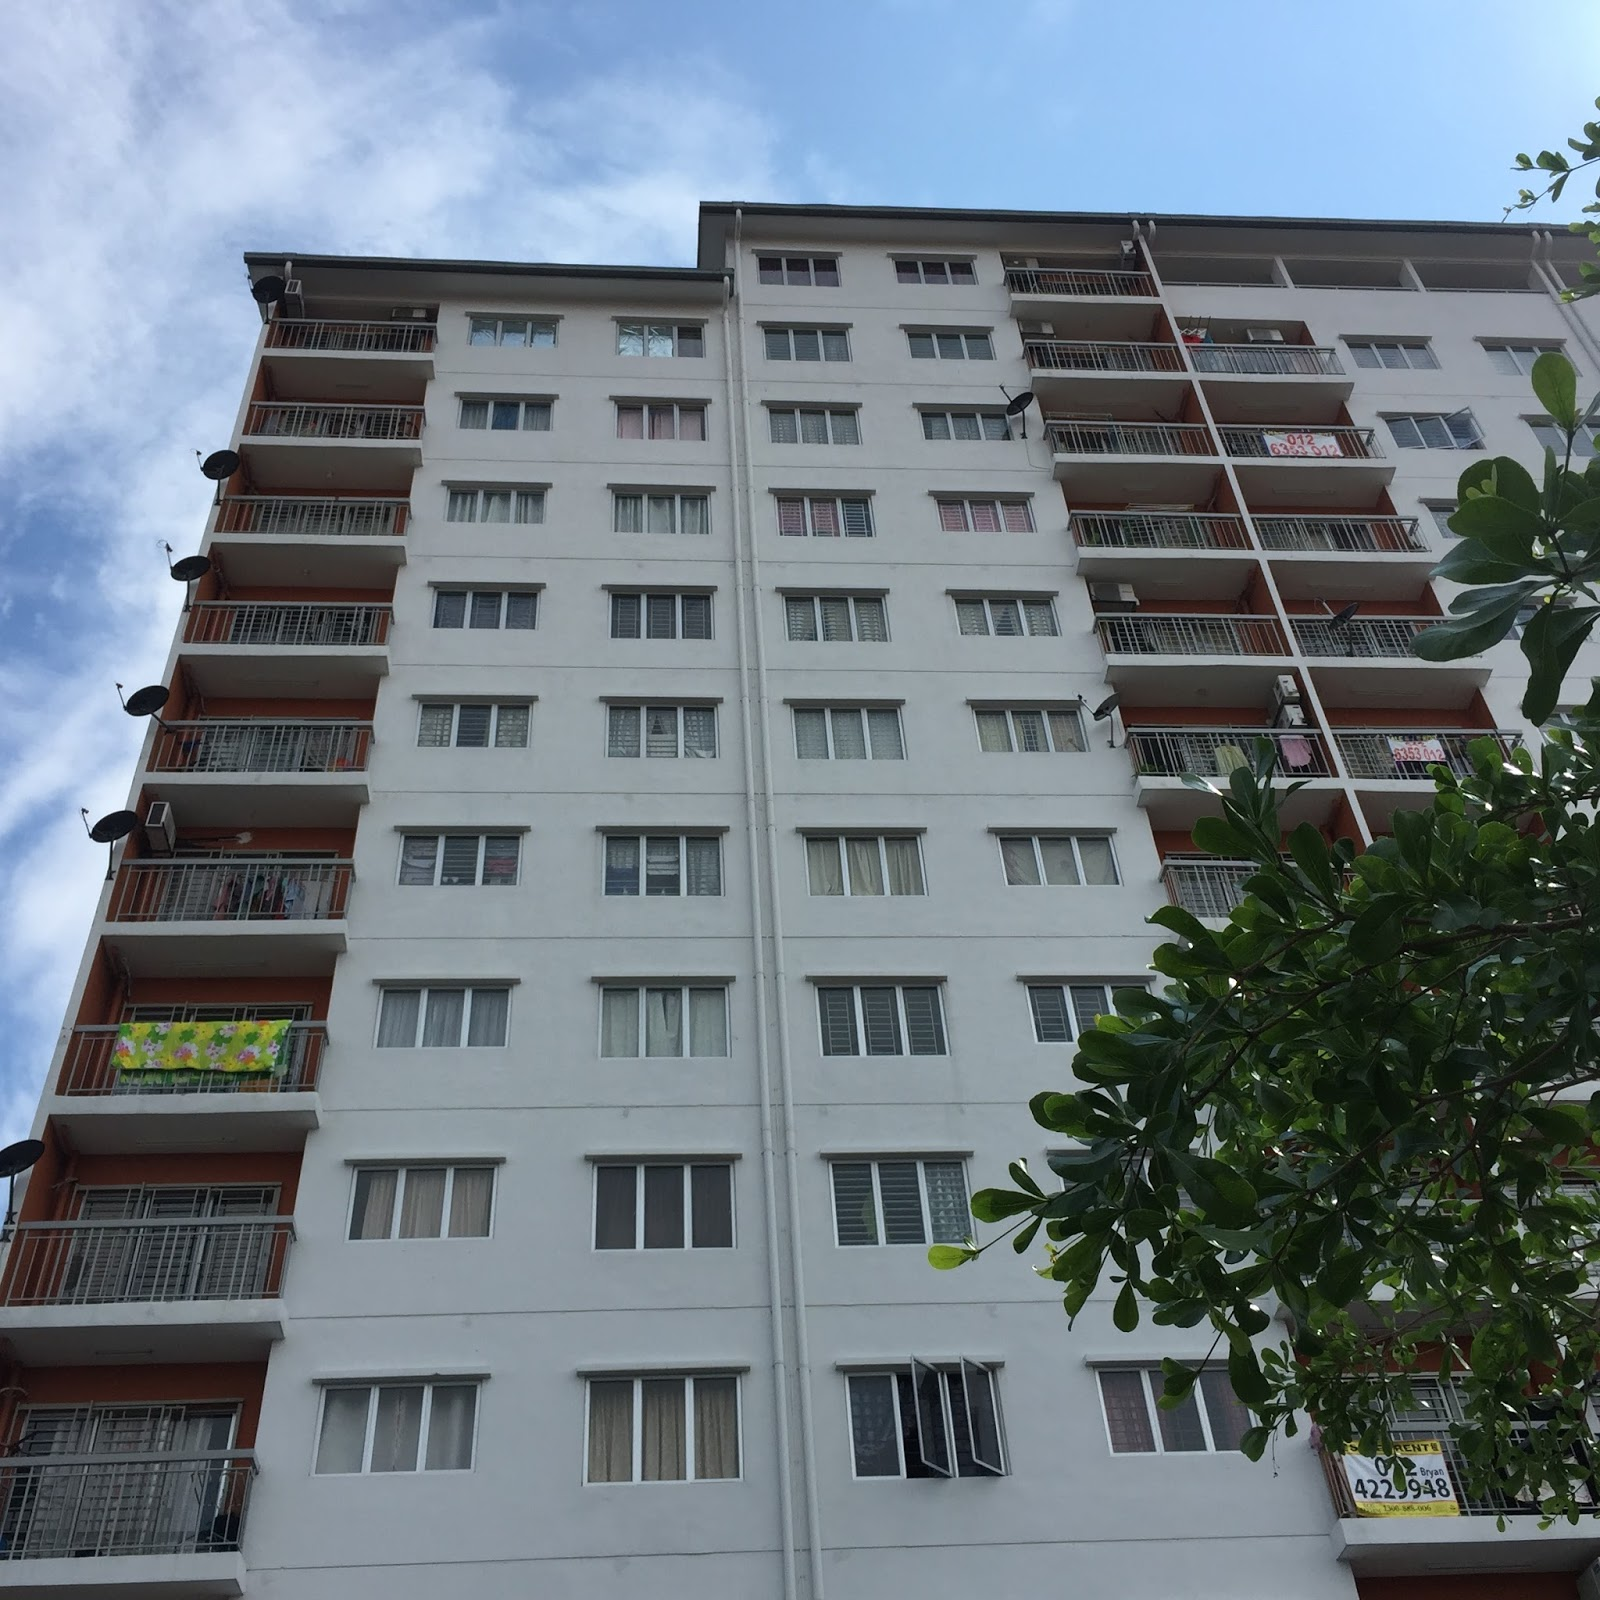 Playground Jogging Track And Covered Parking 24 Hour Security Is Also Available At This Apartment To Keep The Place Safe Secure For Residents